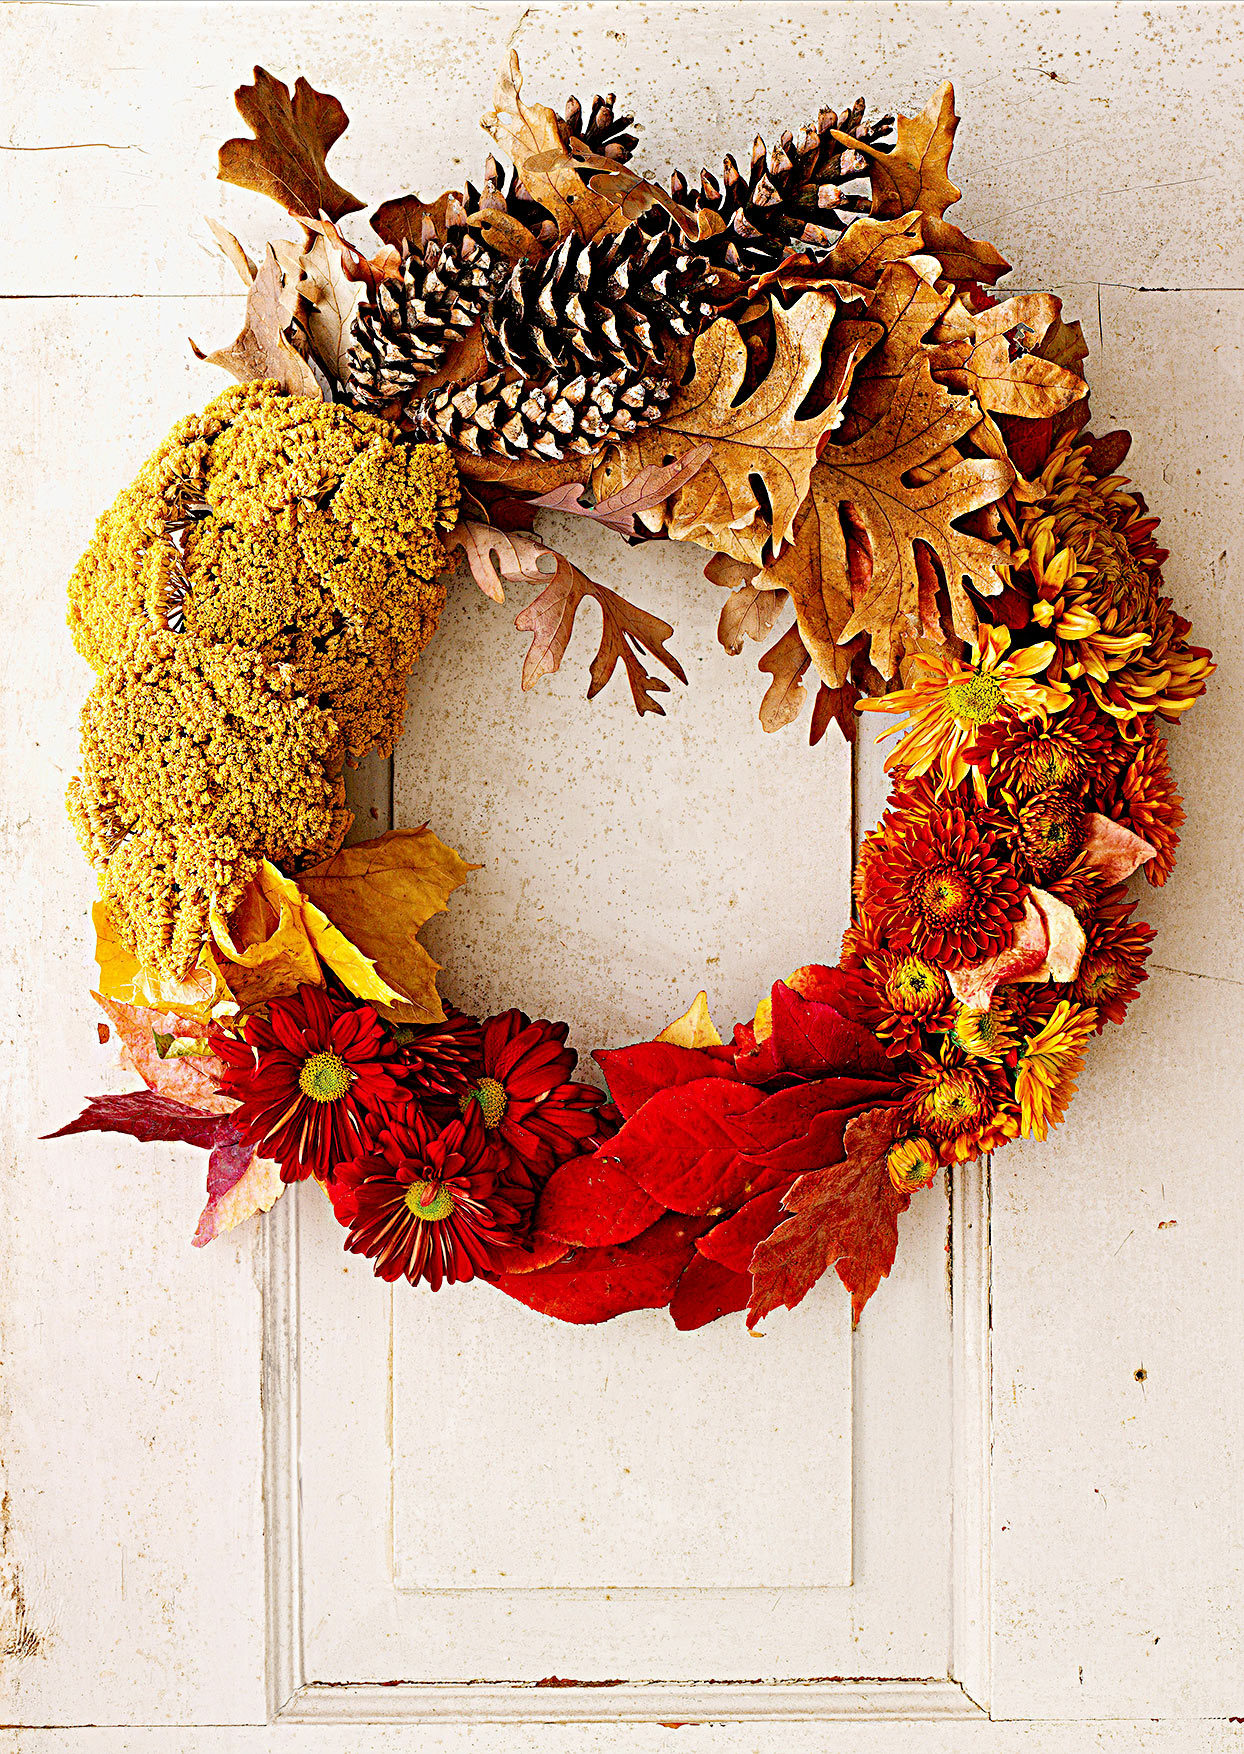 Fall wreath made of leaves, flowers, and pinecones